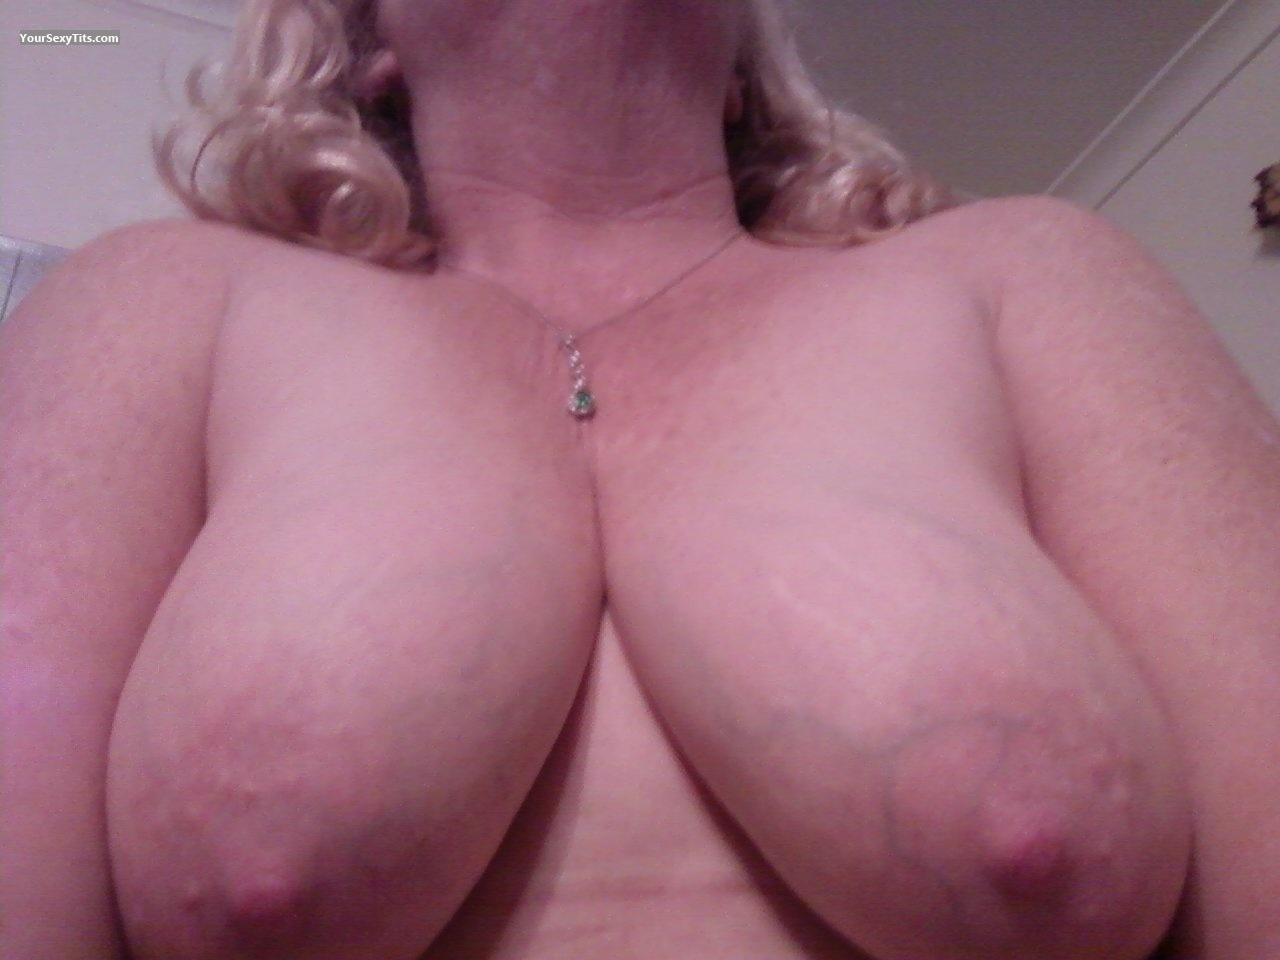 My Very big Tits Selfie by Jb